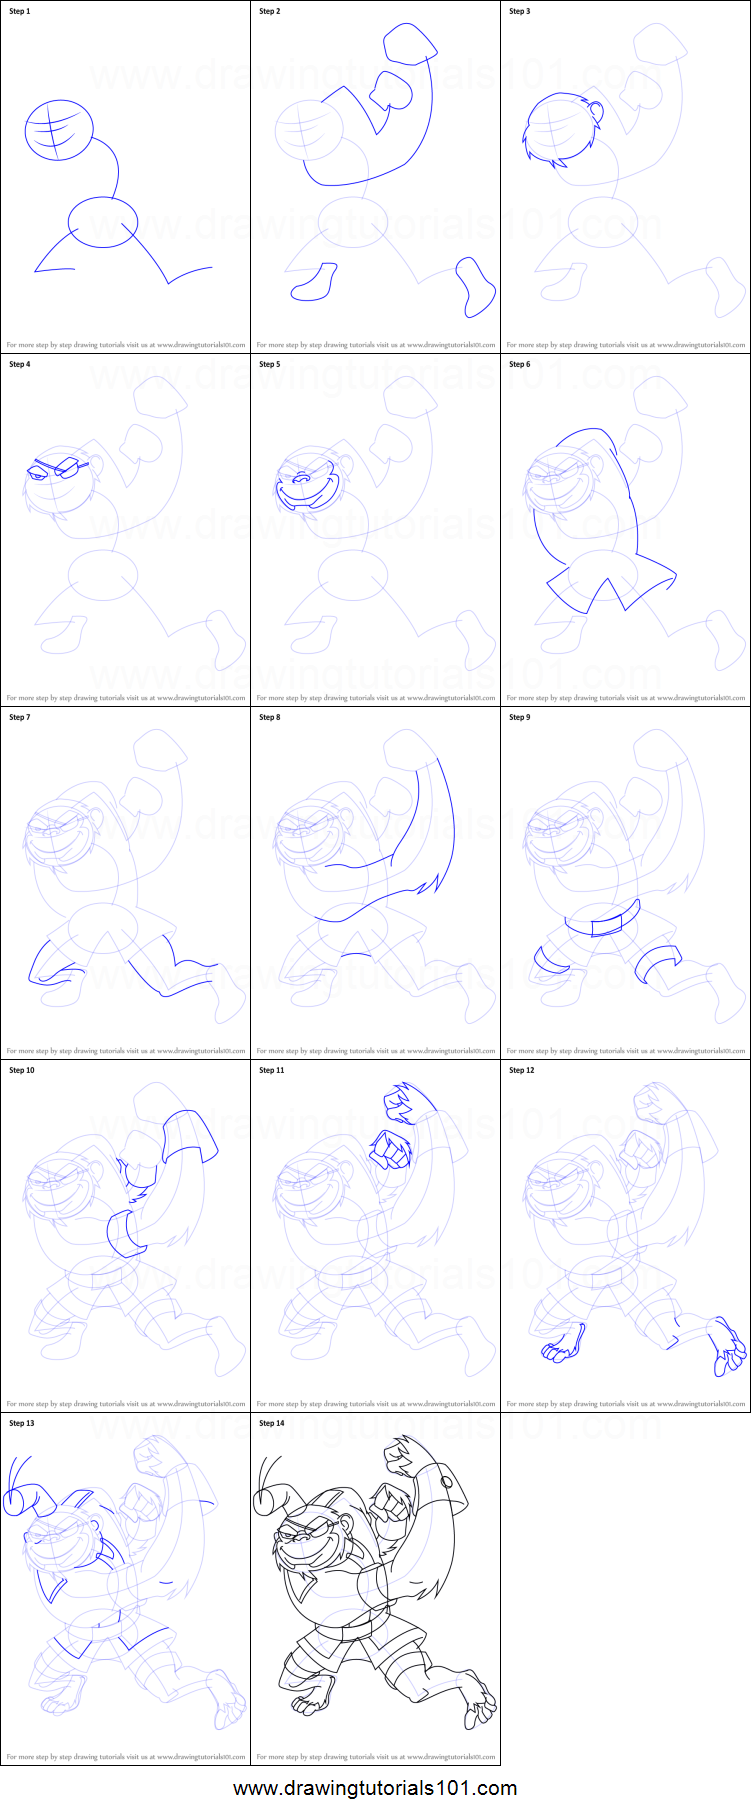 How To Draw Bobo Haha From Generator Rex Printable Step By Step